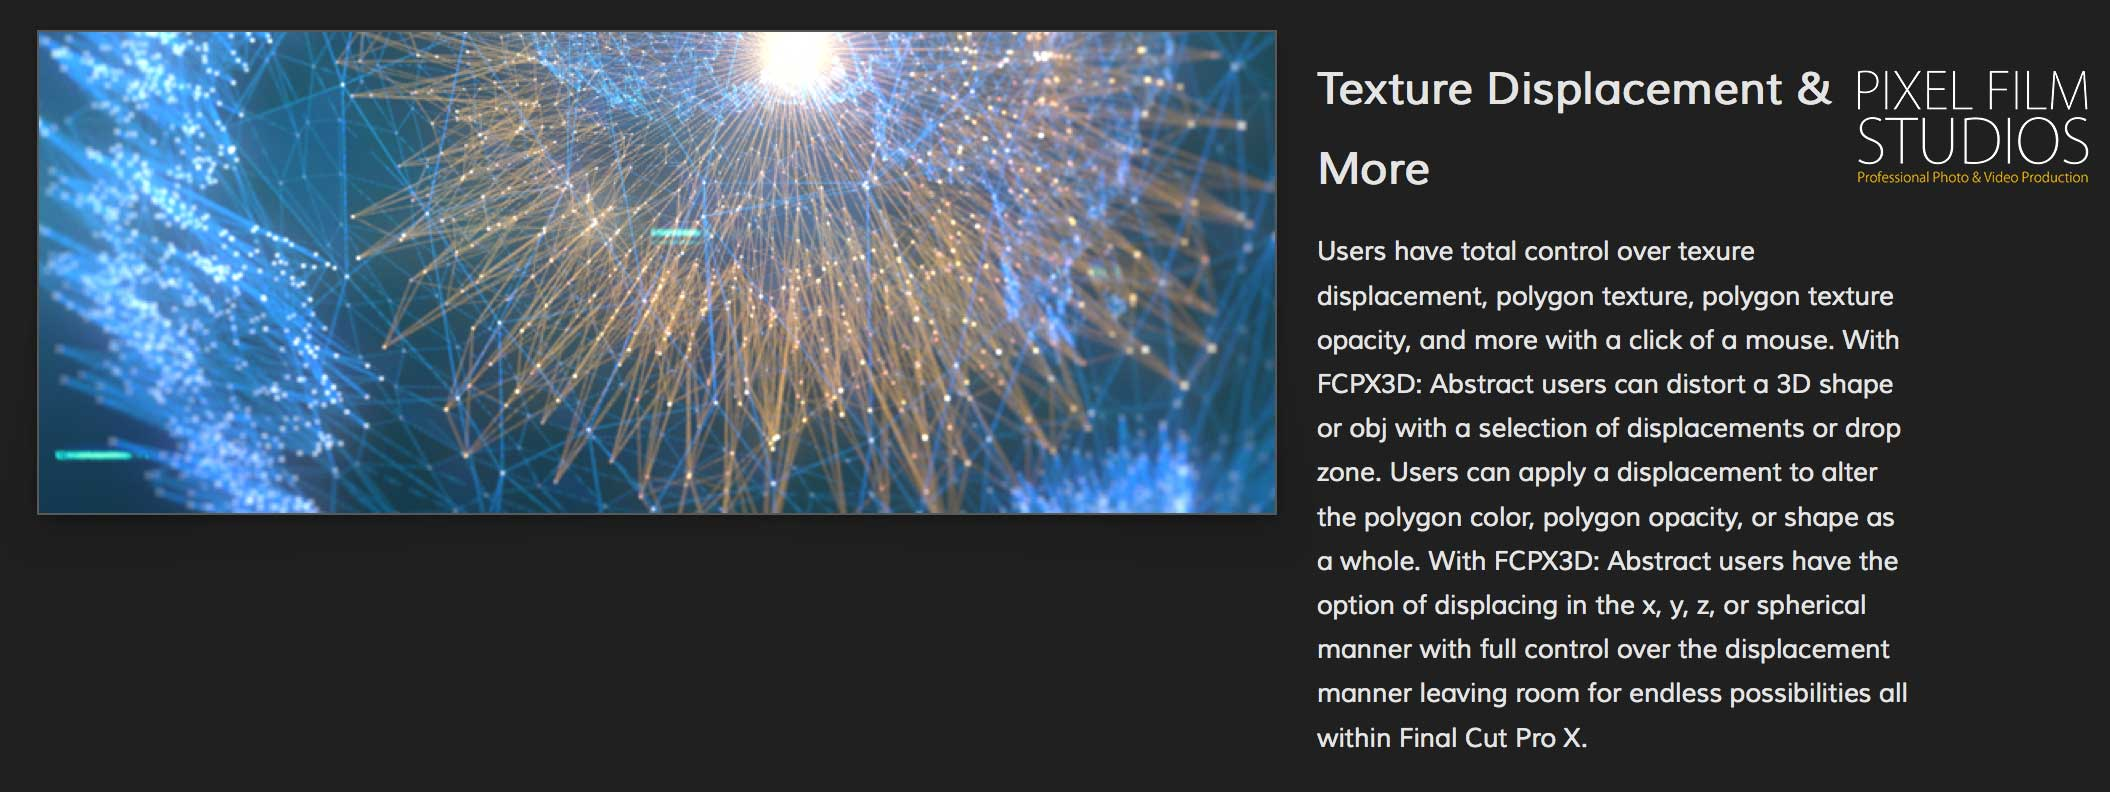 fcpx3d abstract was released by pixel film studios